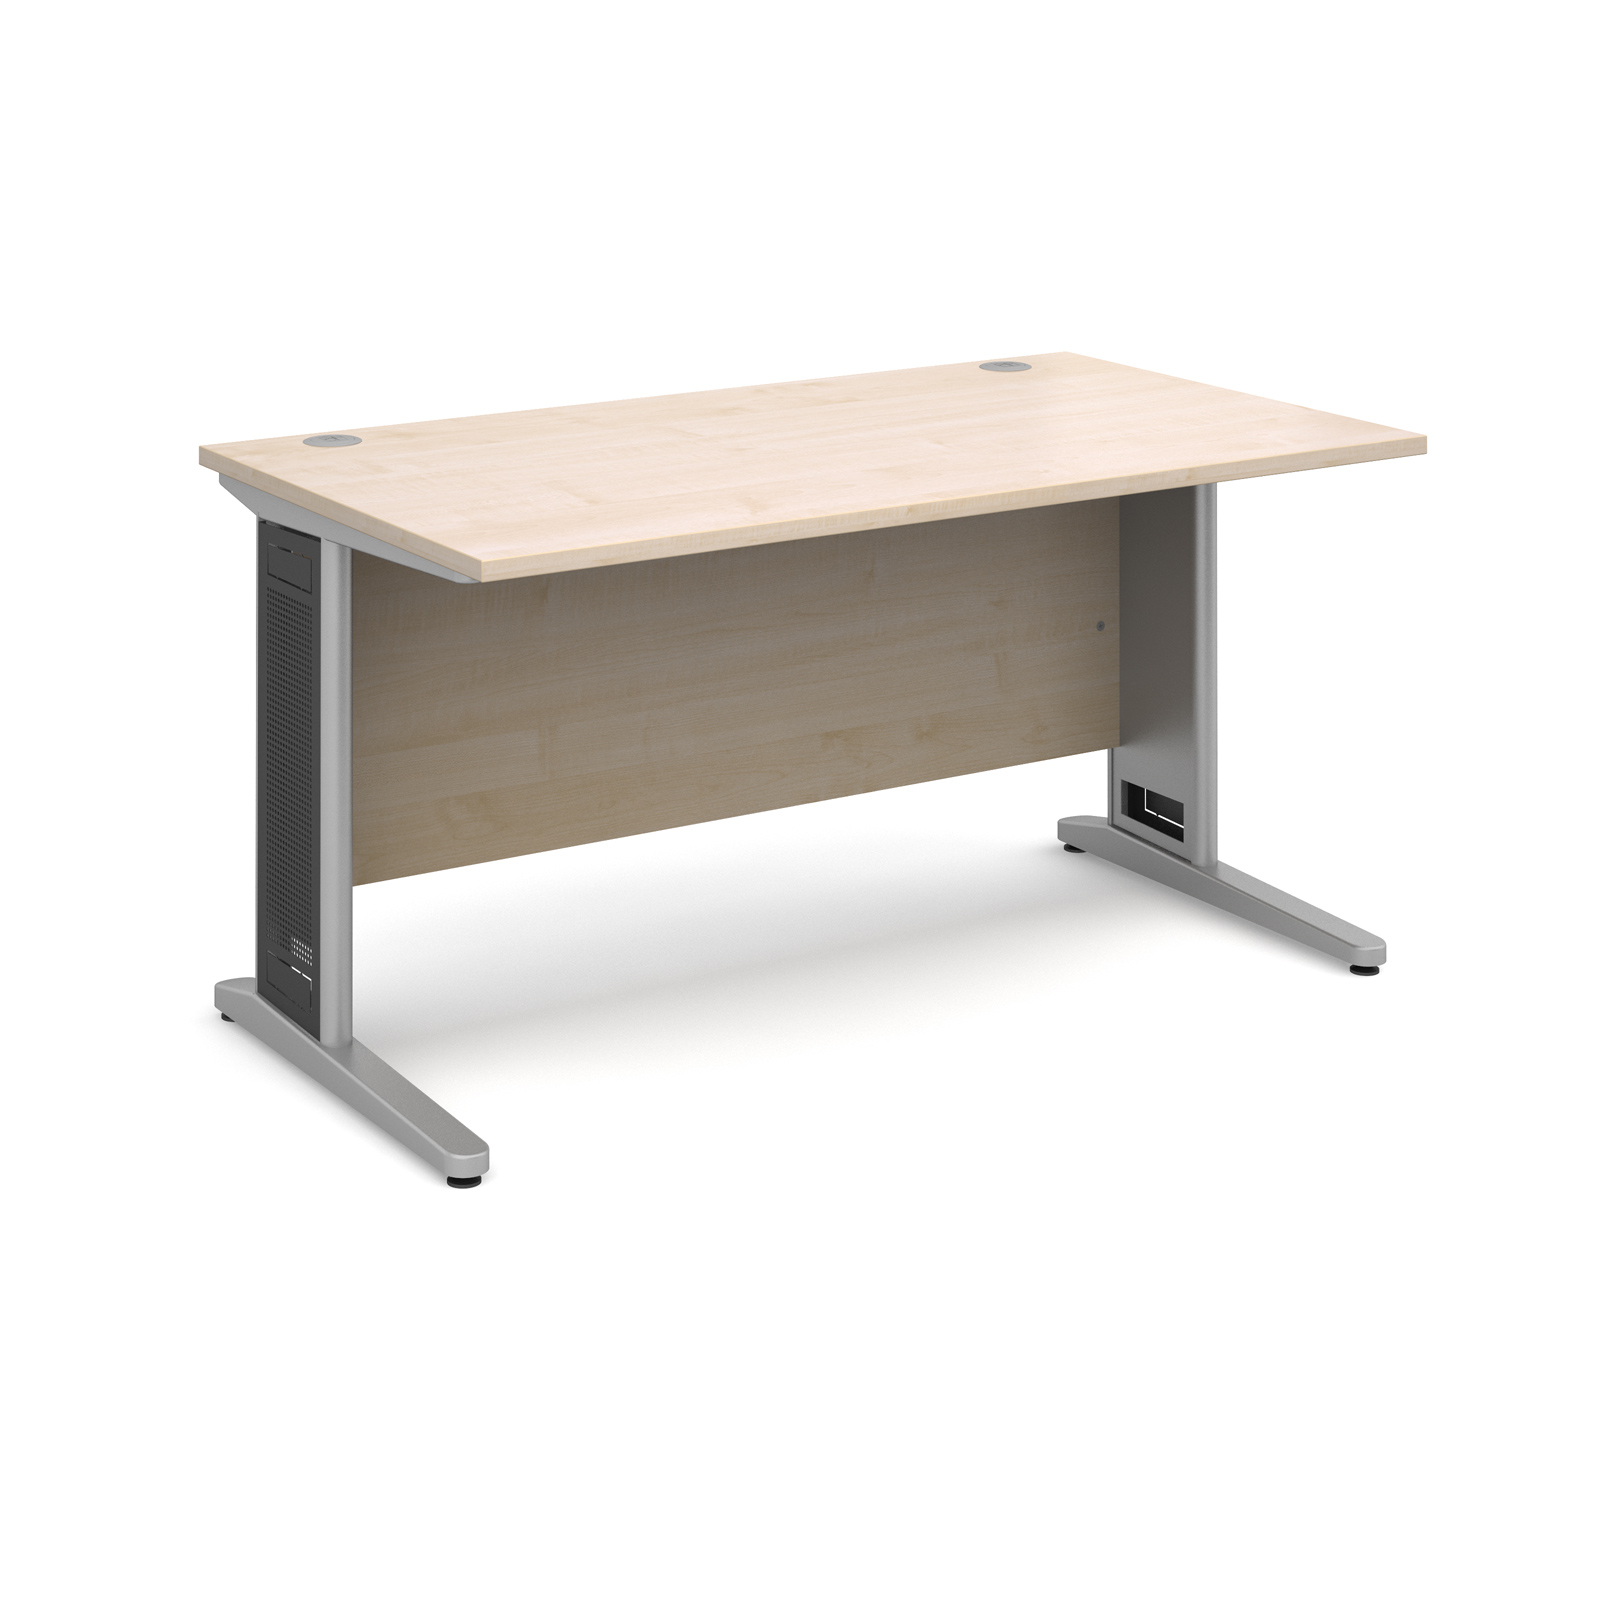 Largo straight desk 1400mm x 800mm - silver cantilever frame with removable grill, maple top